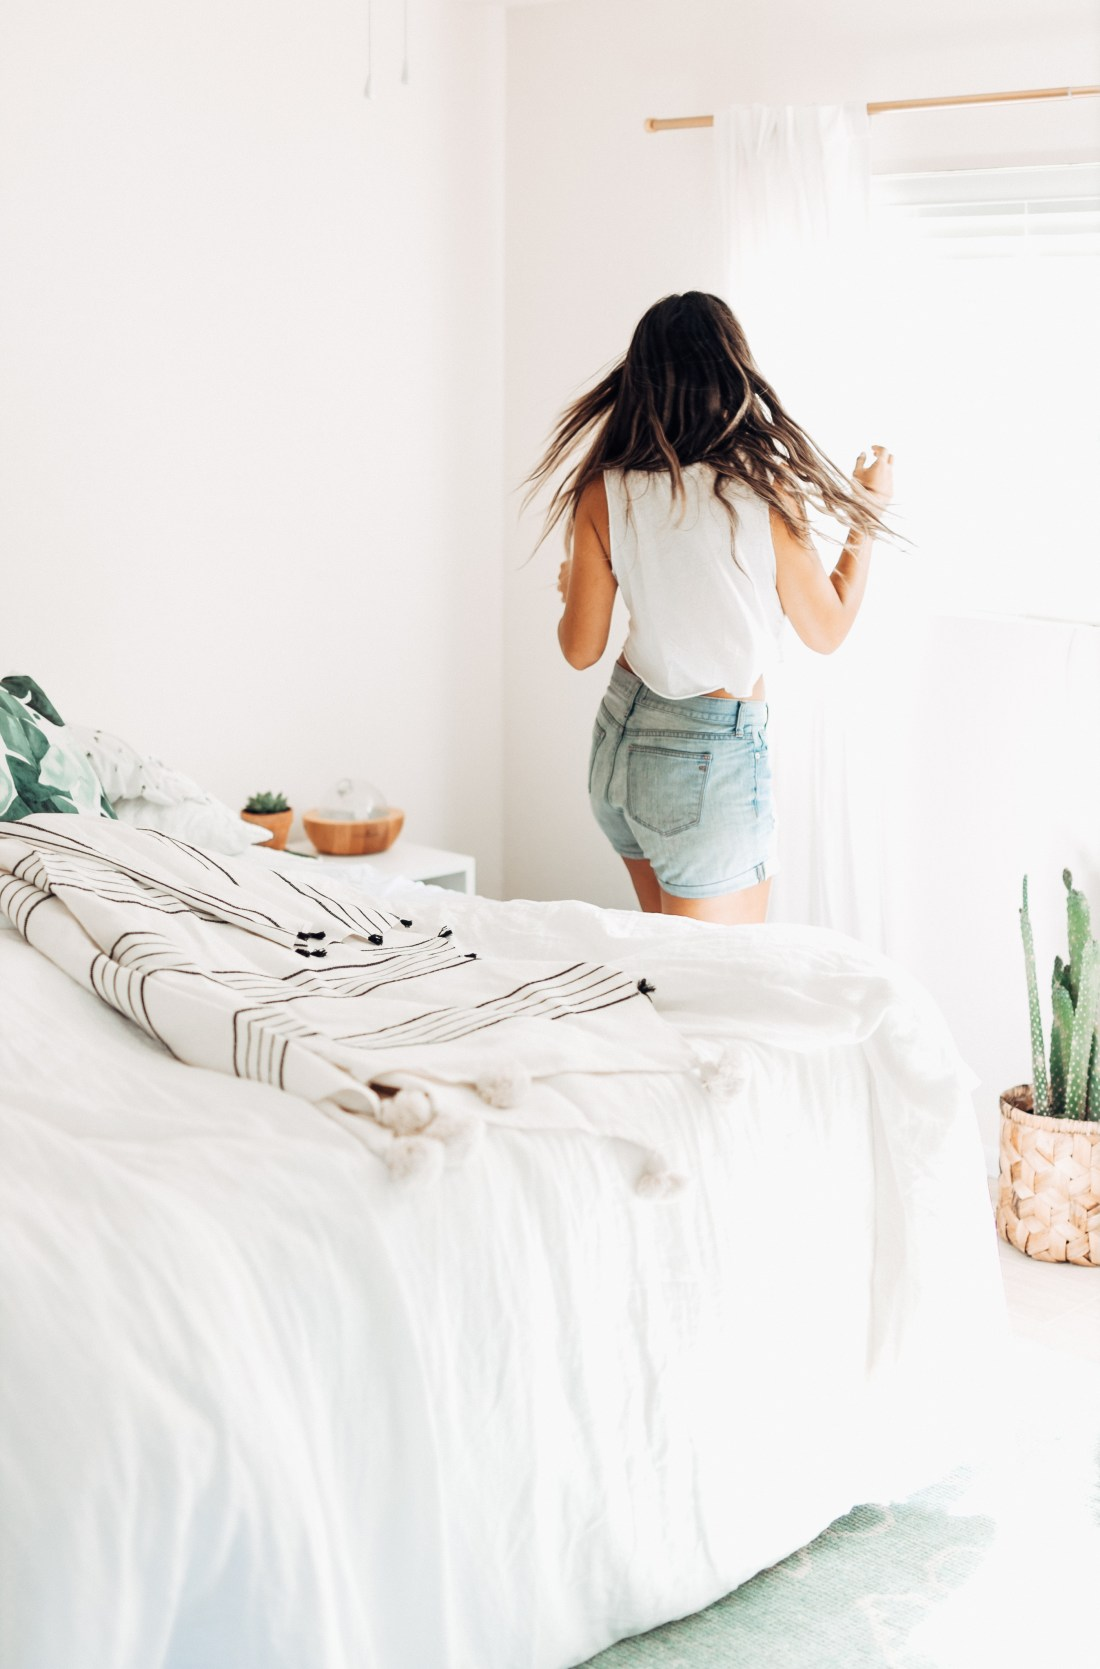 Serena & Lily Black + White Throw | White Master Bedroom Inspiration | Parachute Home Linen Bedding | Home Inspiration | Home Renovation via @elanaloo + elanaloo.com